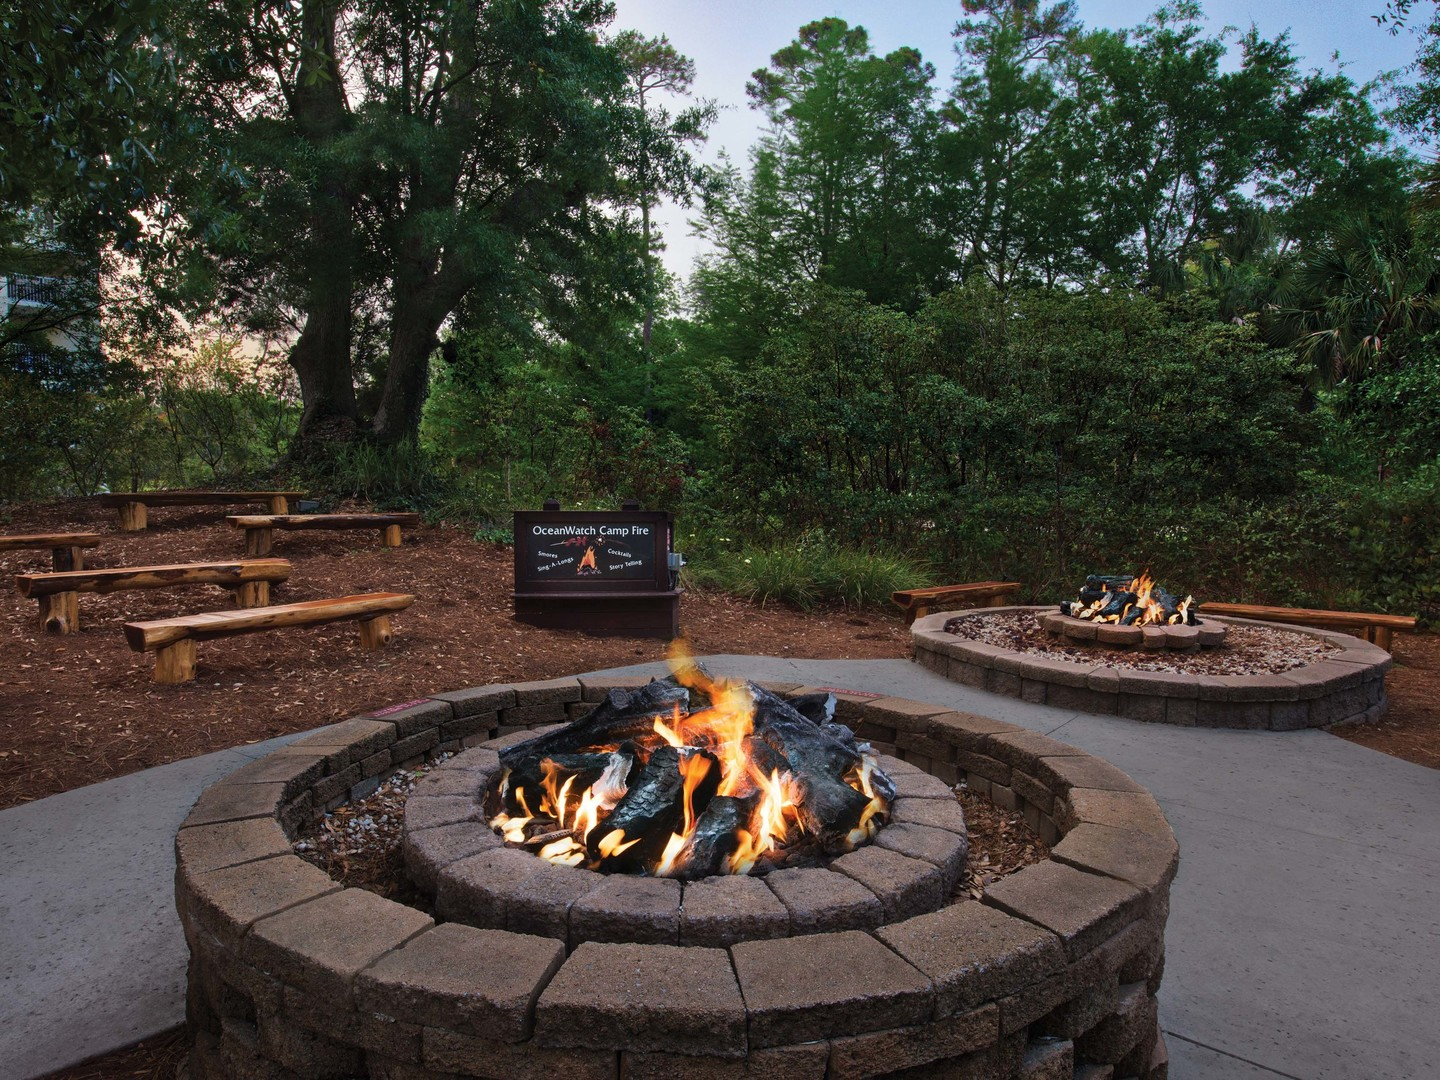 Marriott's OceanWatch Fire Pit. Marriott's OceanWatch is located in Myrtle Beach, South Carolina United States.